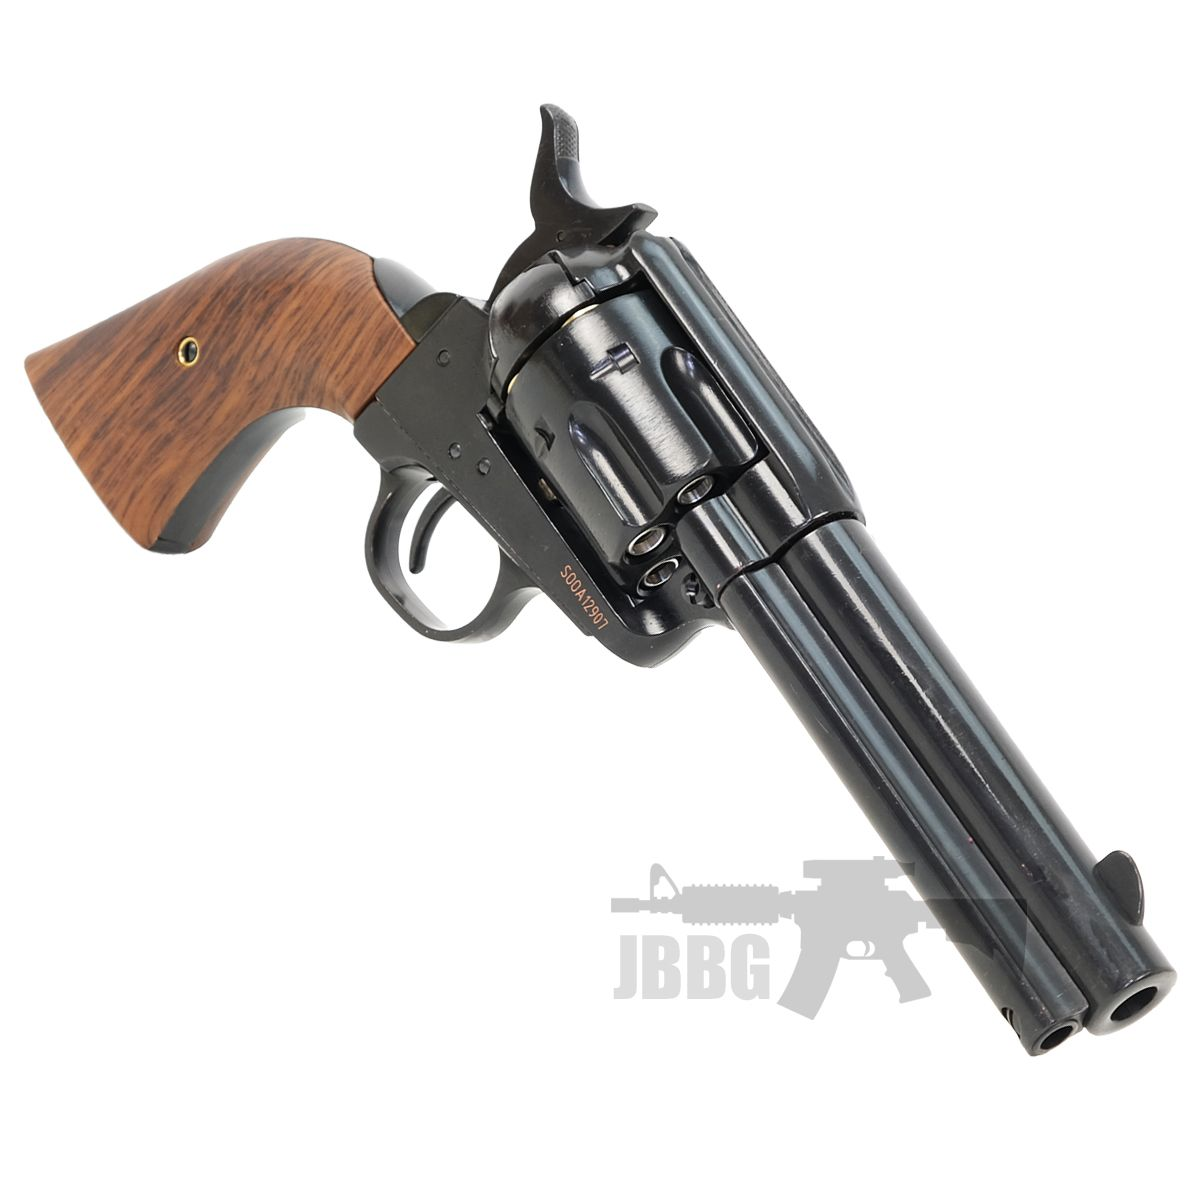 King Arms SAA 45 Peacemaker Revolver S 2